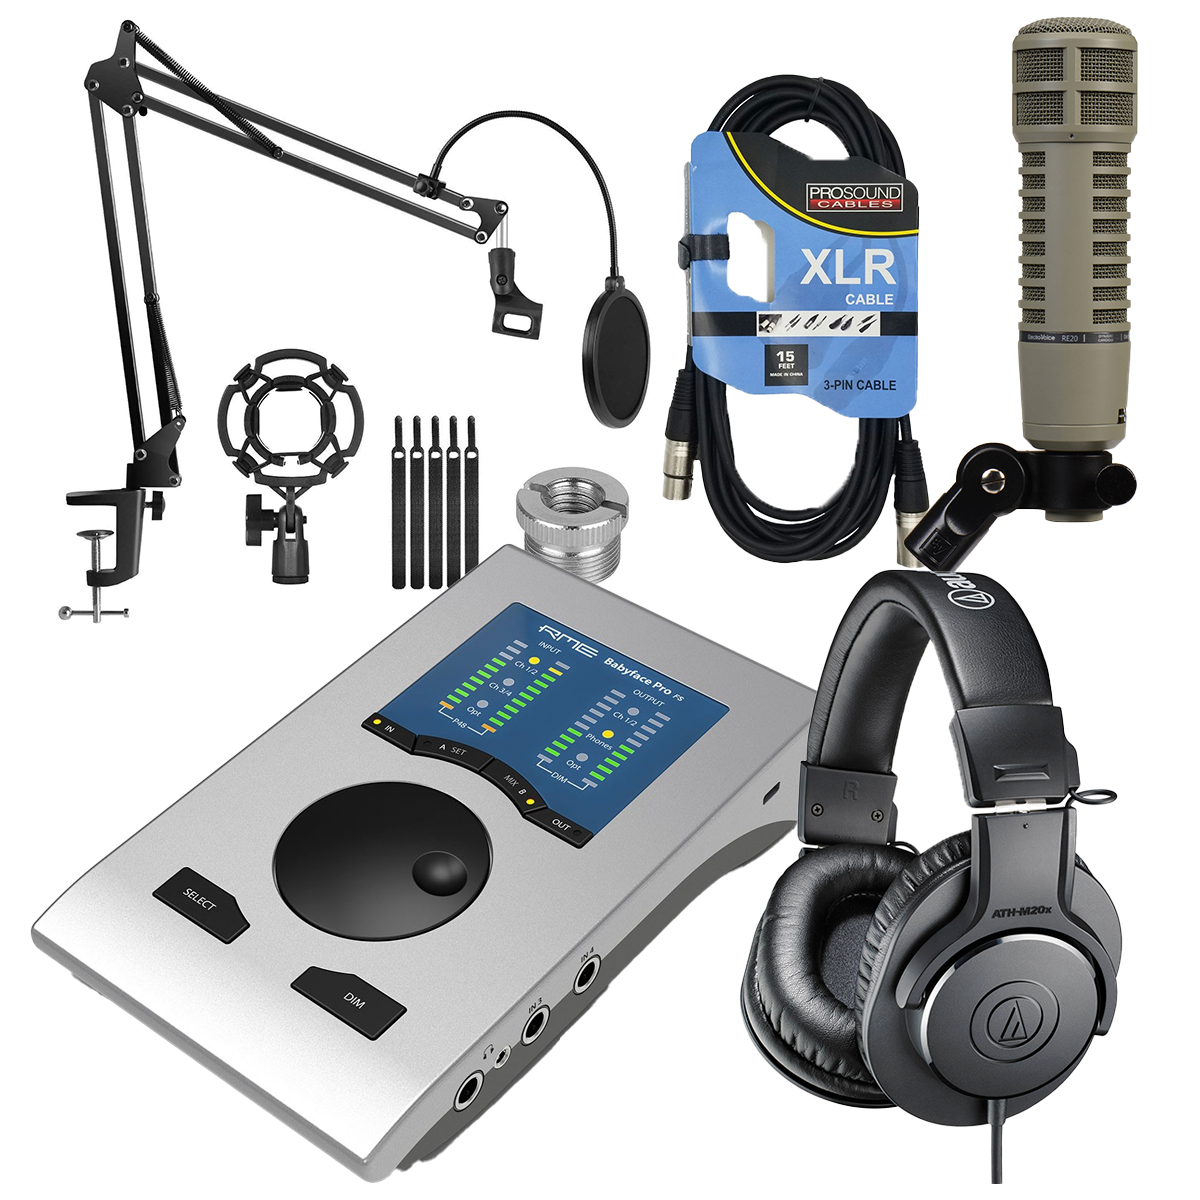 -2 RME Babyface Pro FS - Electro-Voice RE20 - XLR Cable - ATH-M20X - InnoGear Mic Stand Suspension Boom - $1249.99